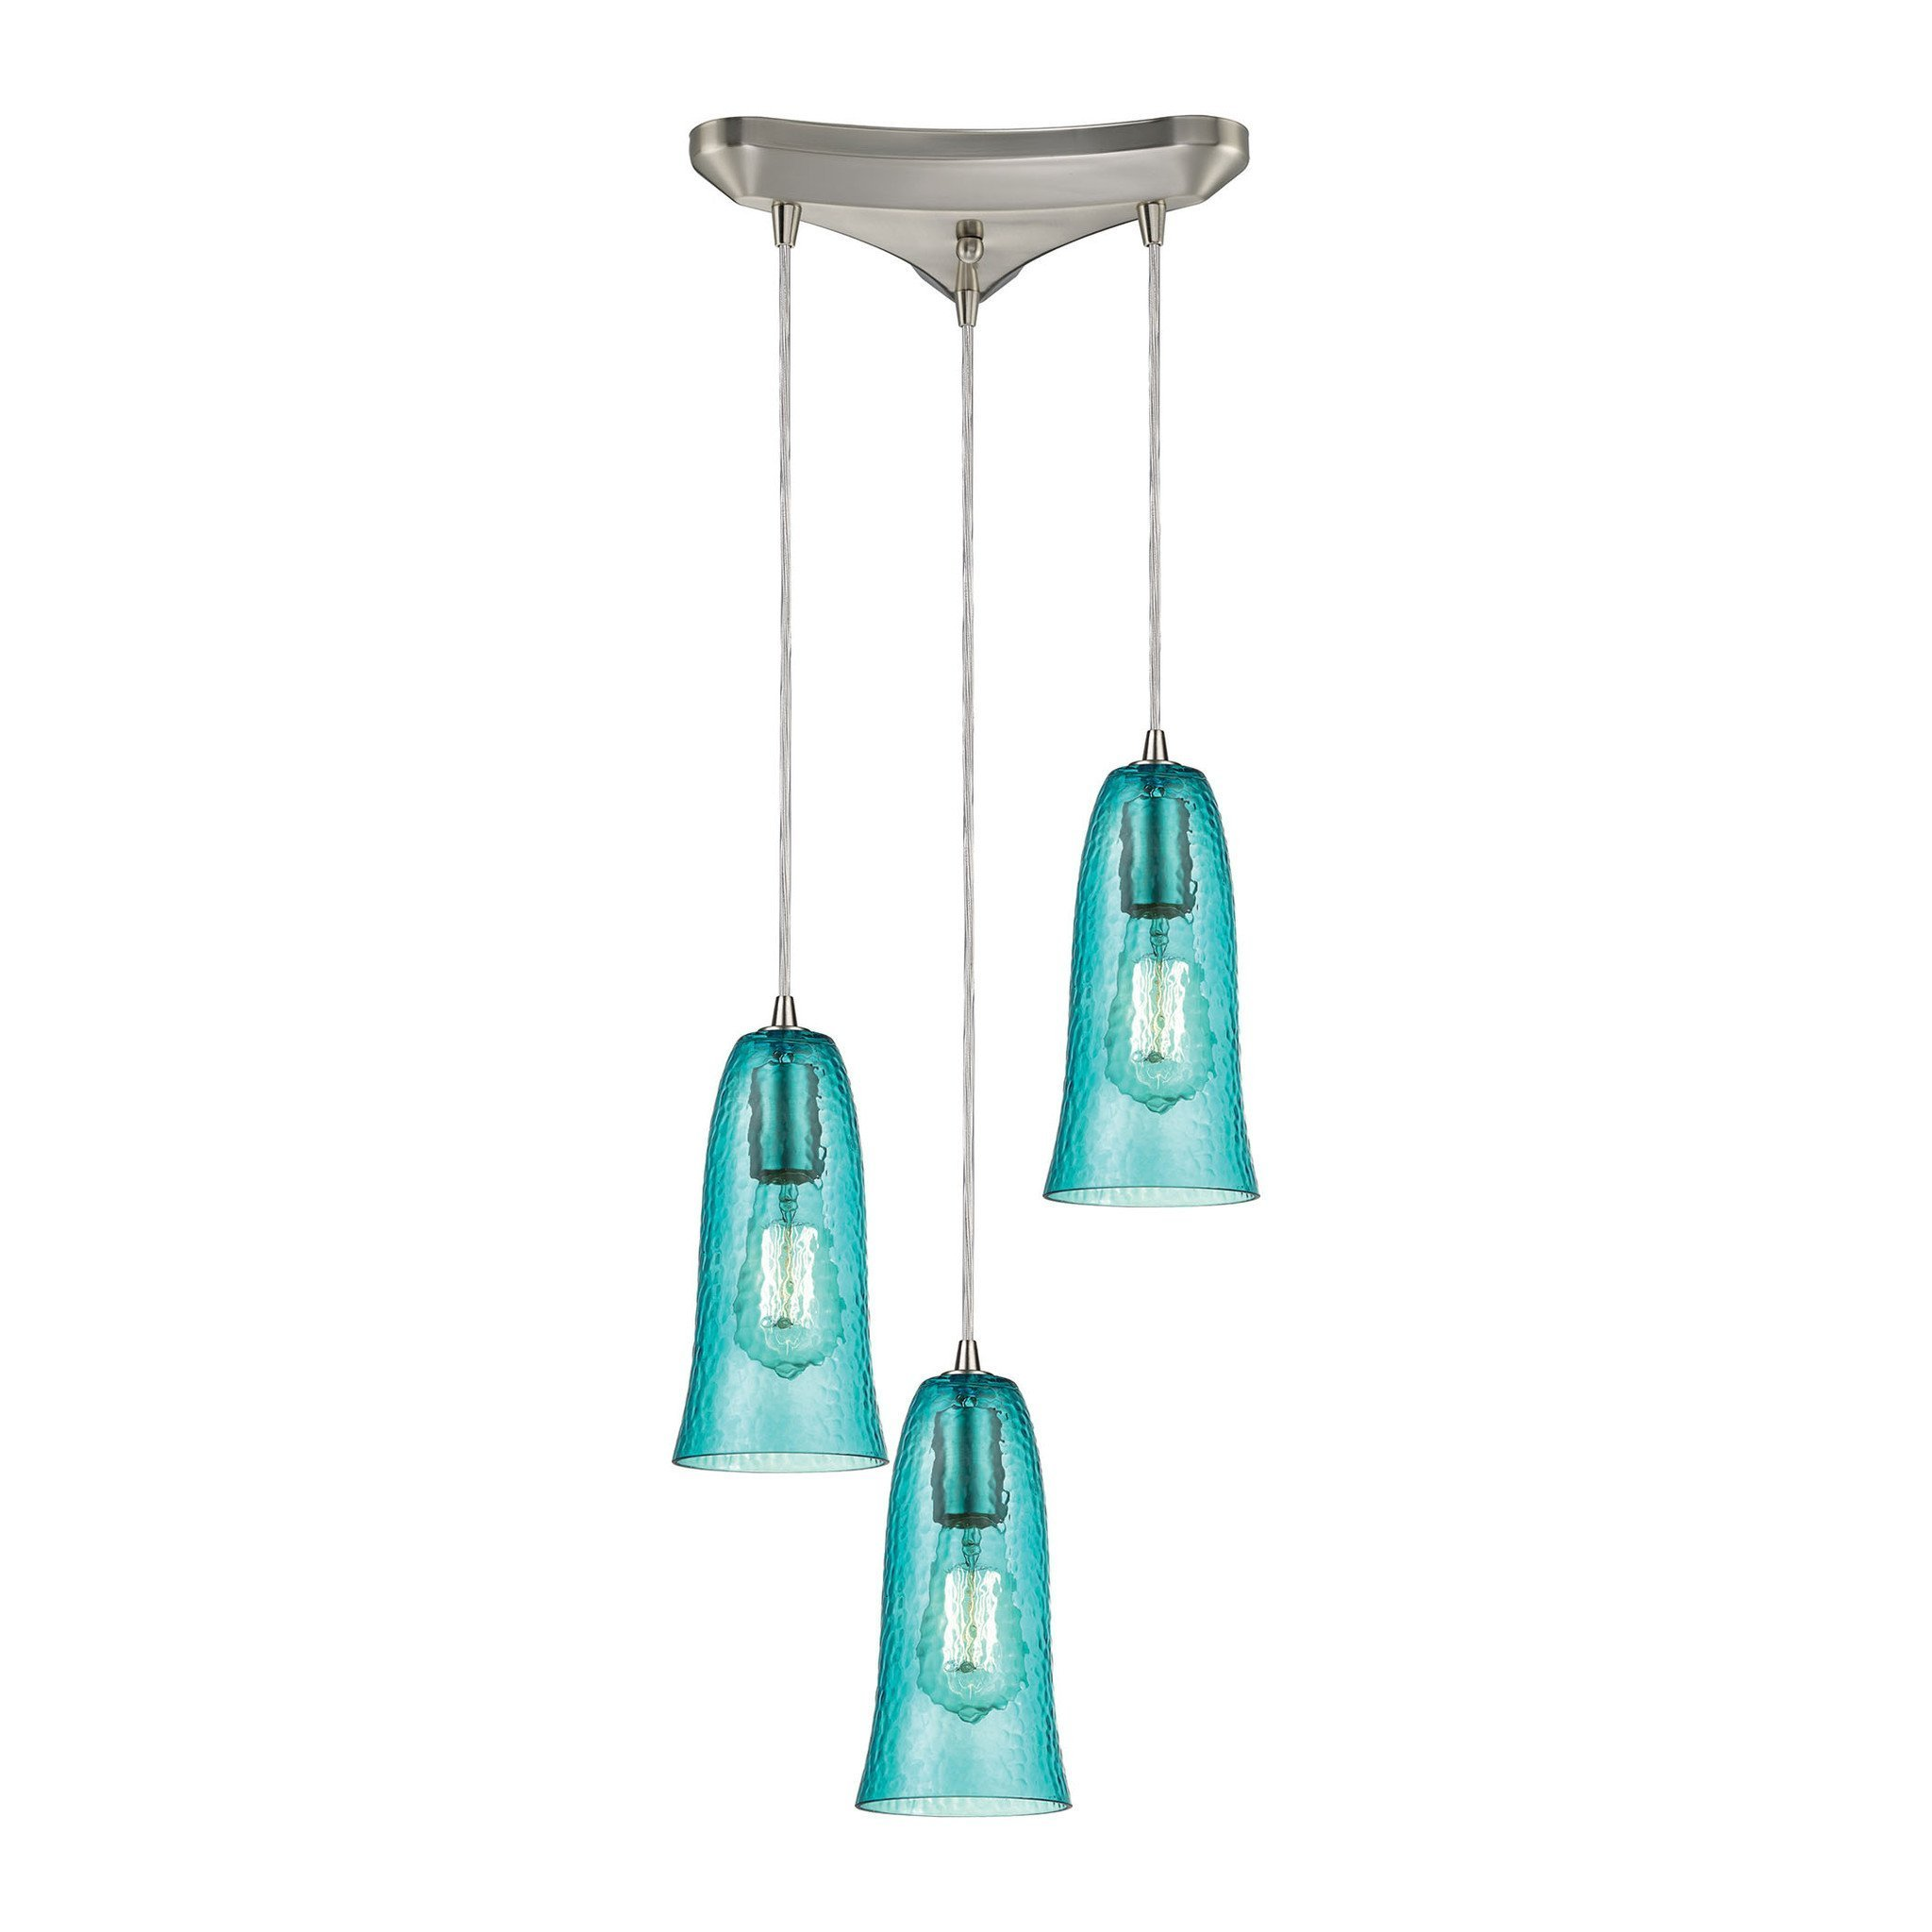 ELK Lighting HAQ Hammered Glass Collection Satin Nickel